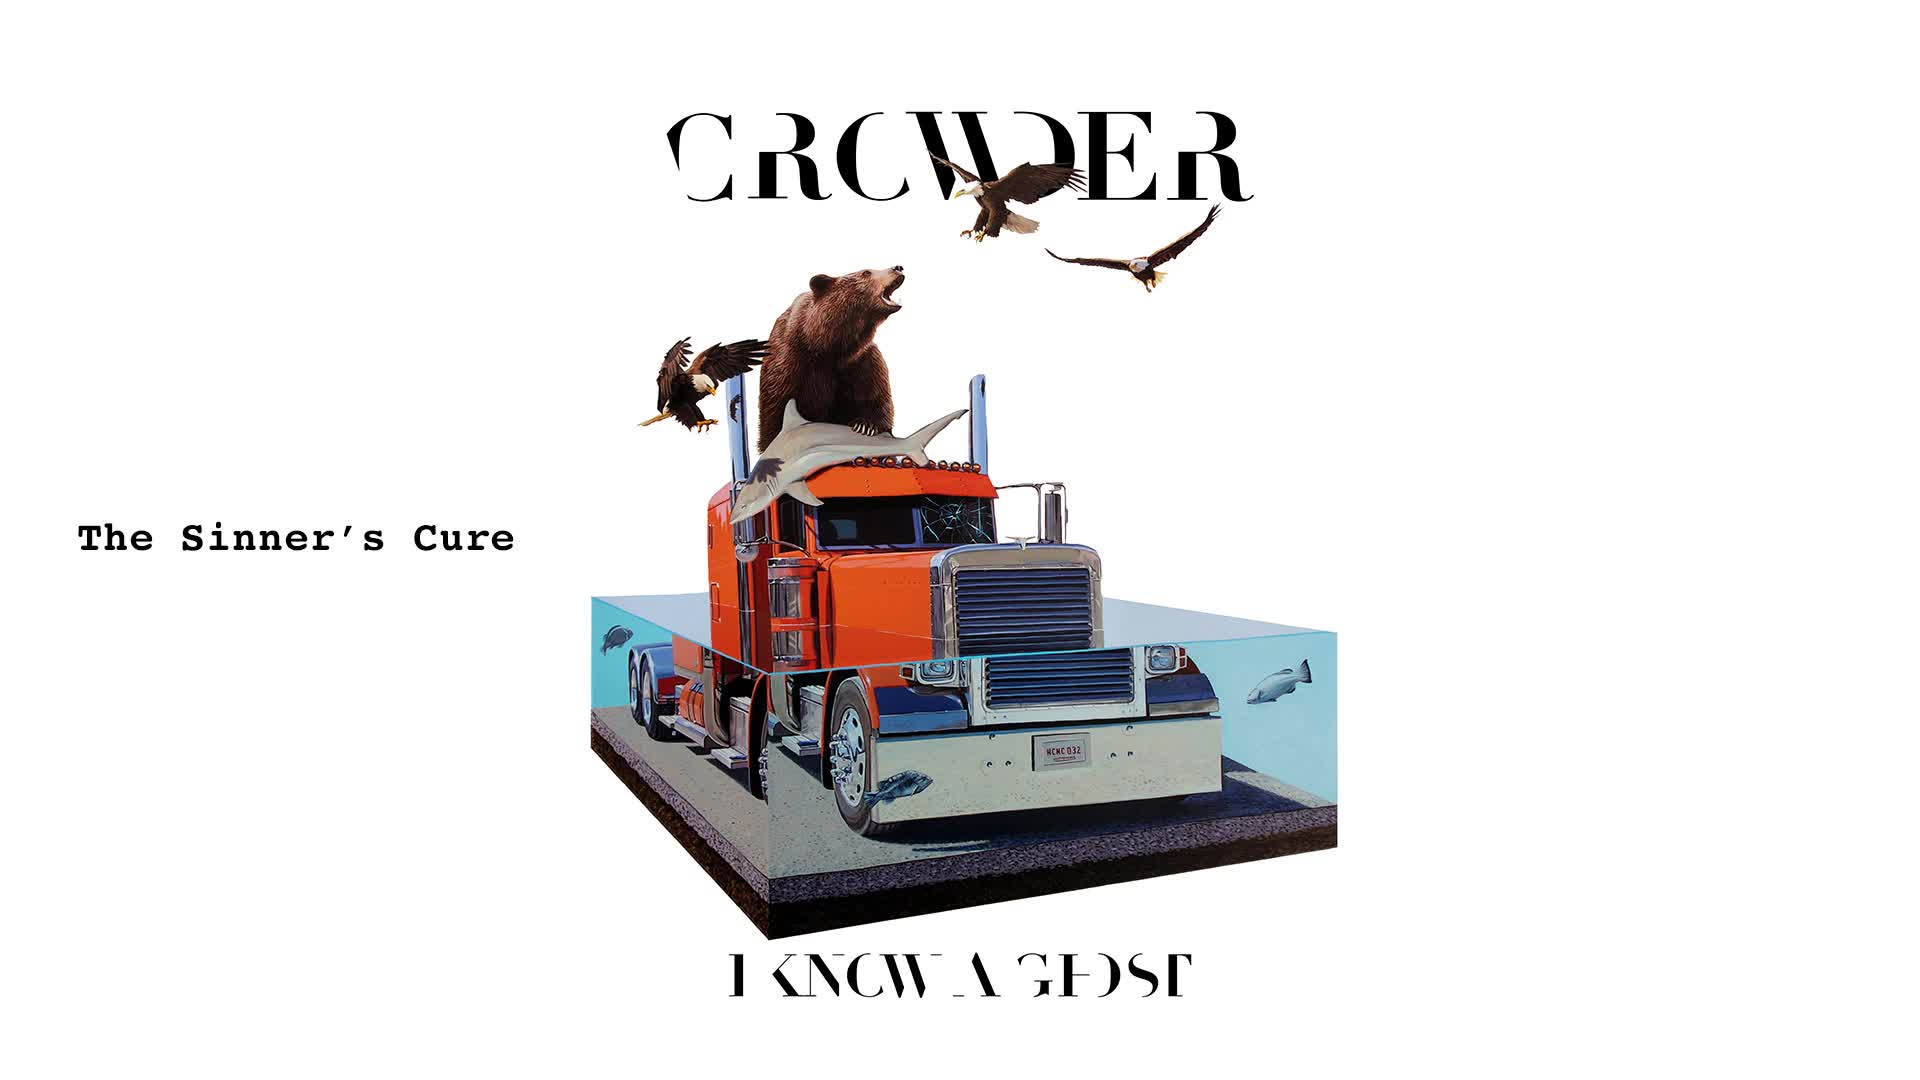 Crowder - The Sinner's Cure